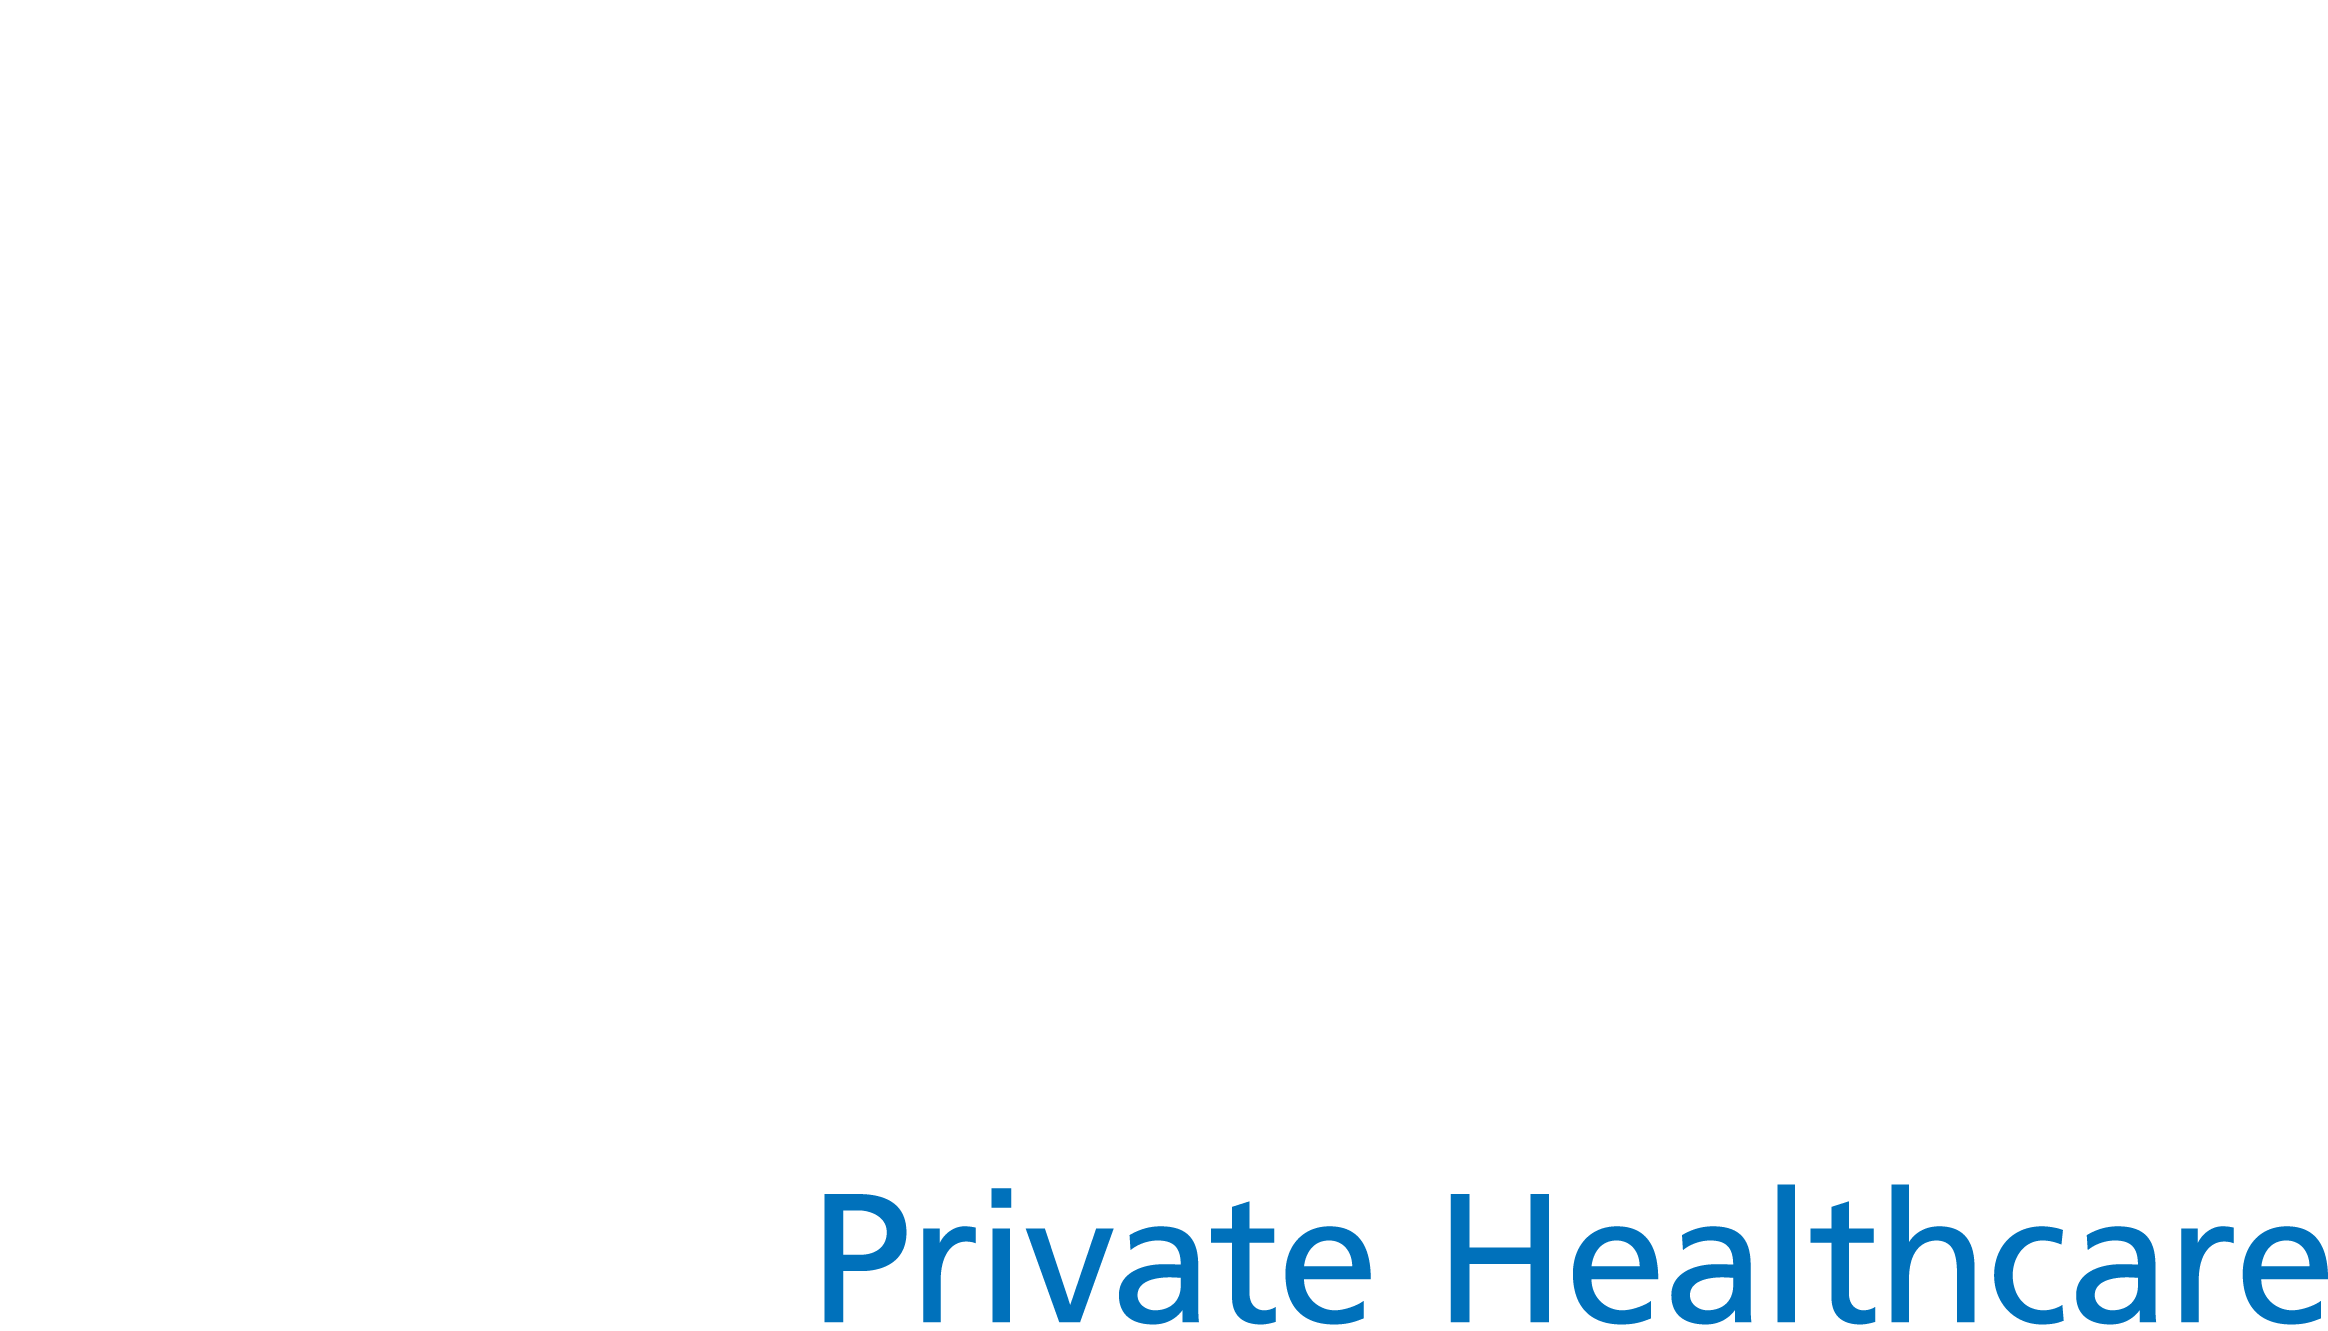 Olxeas NHS Private Healthcare